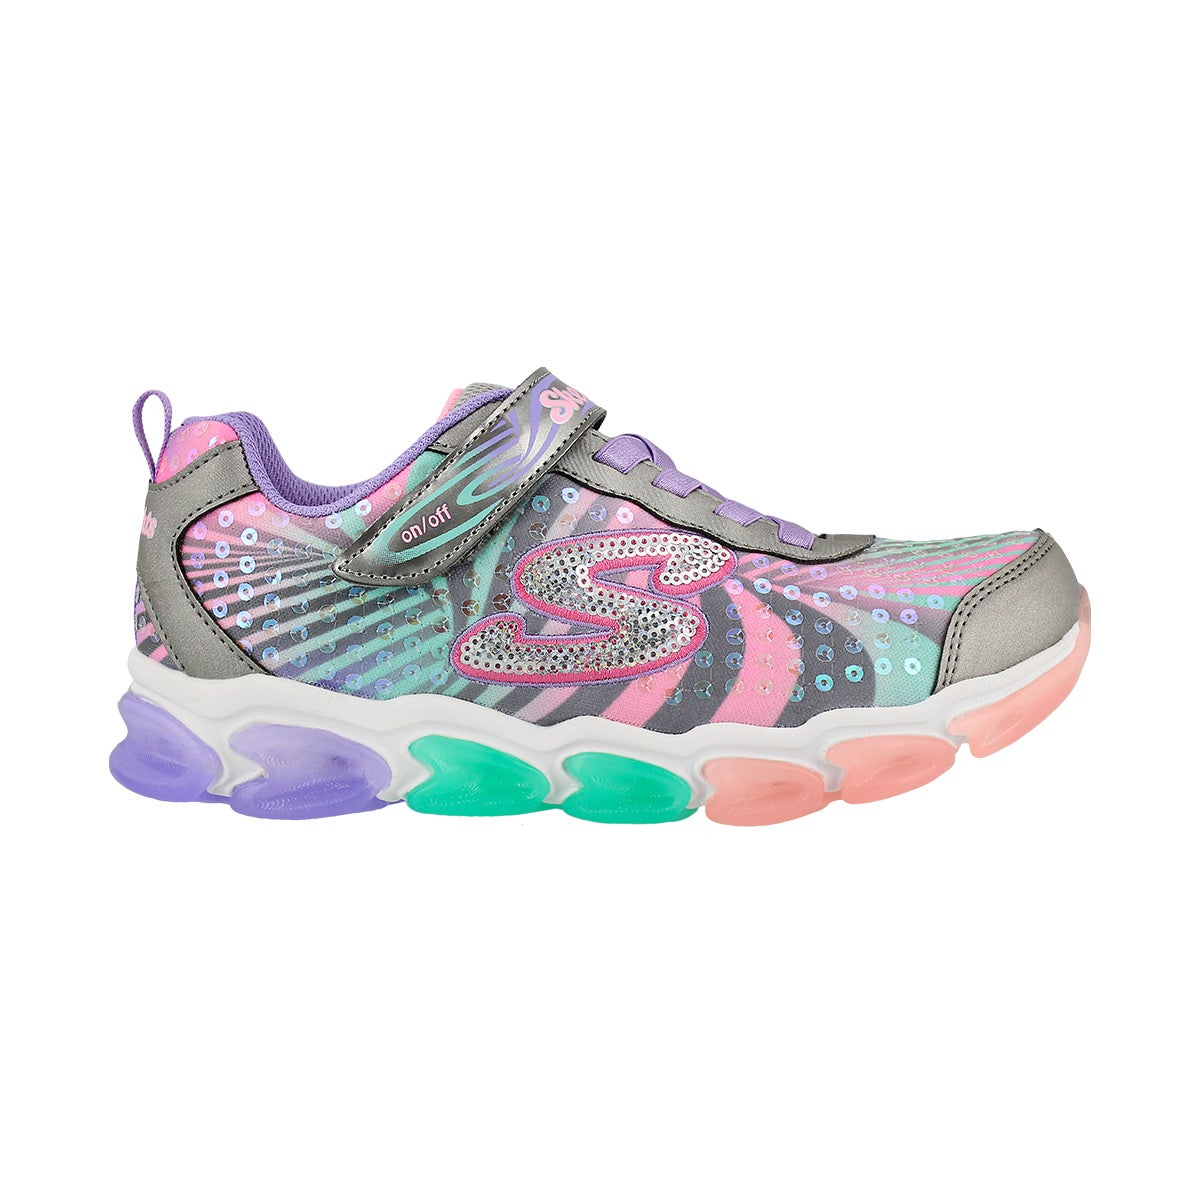 Grls Jelly Beams multi lightup sneaker